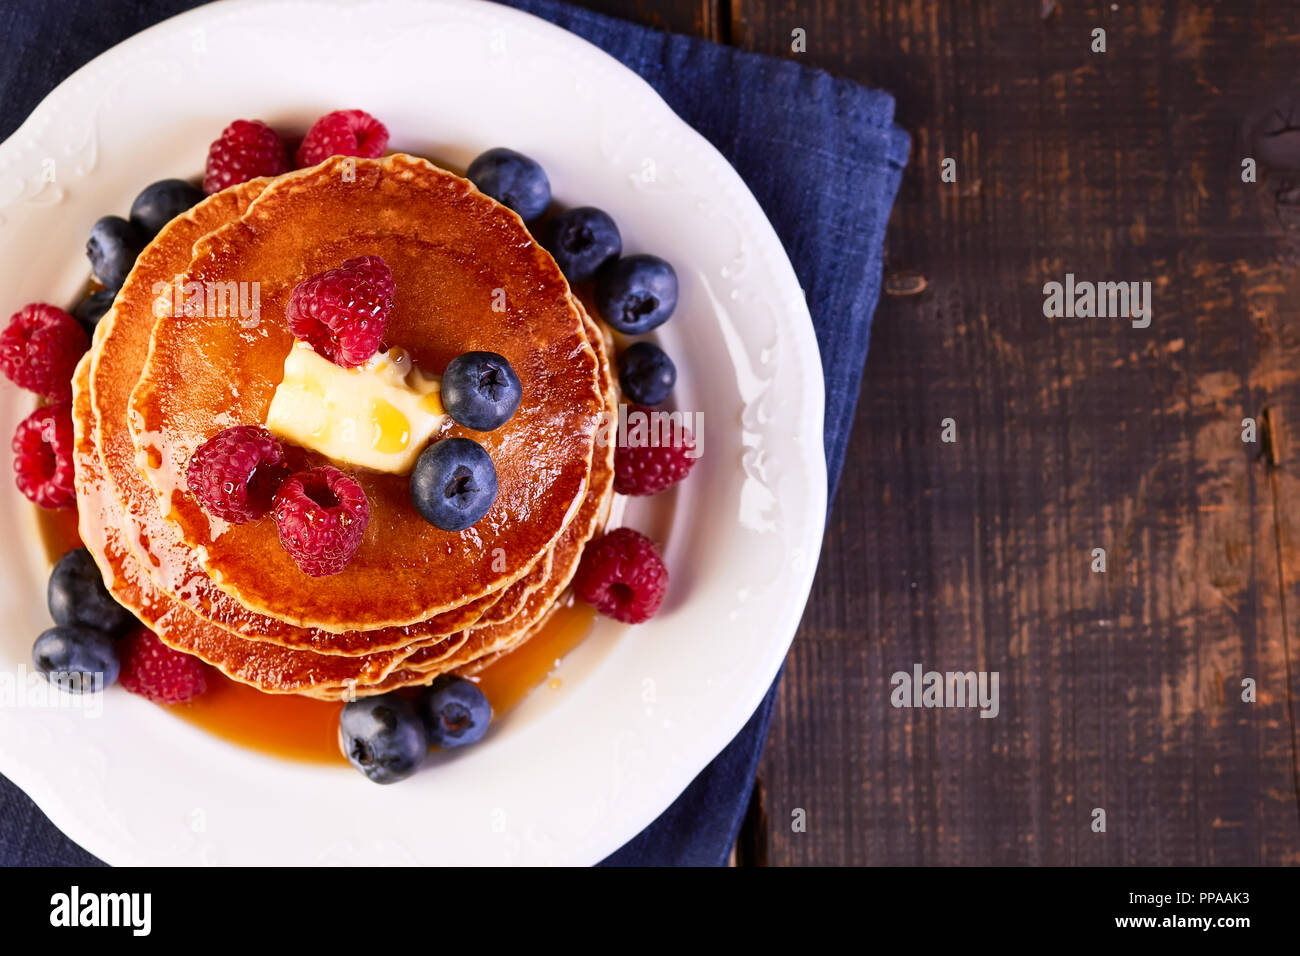 Pancakes with fresh berries maple syrup and butter on wooden table - Stock Image